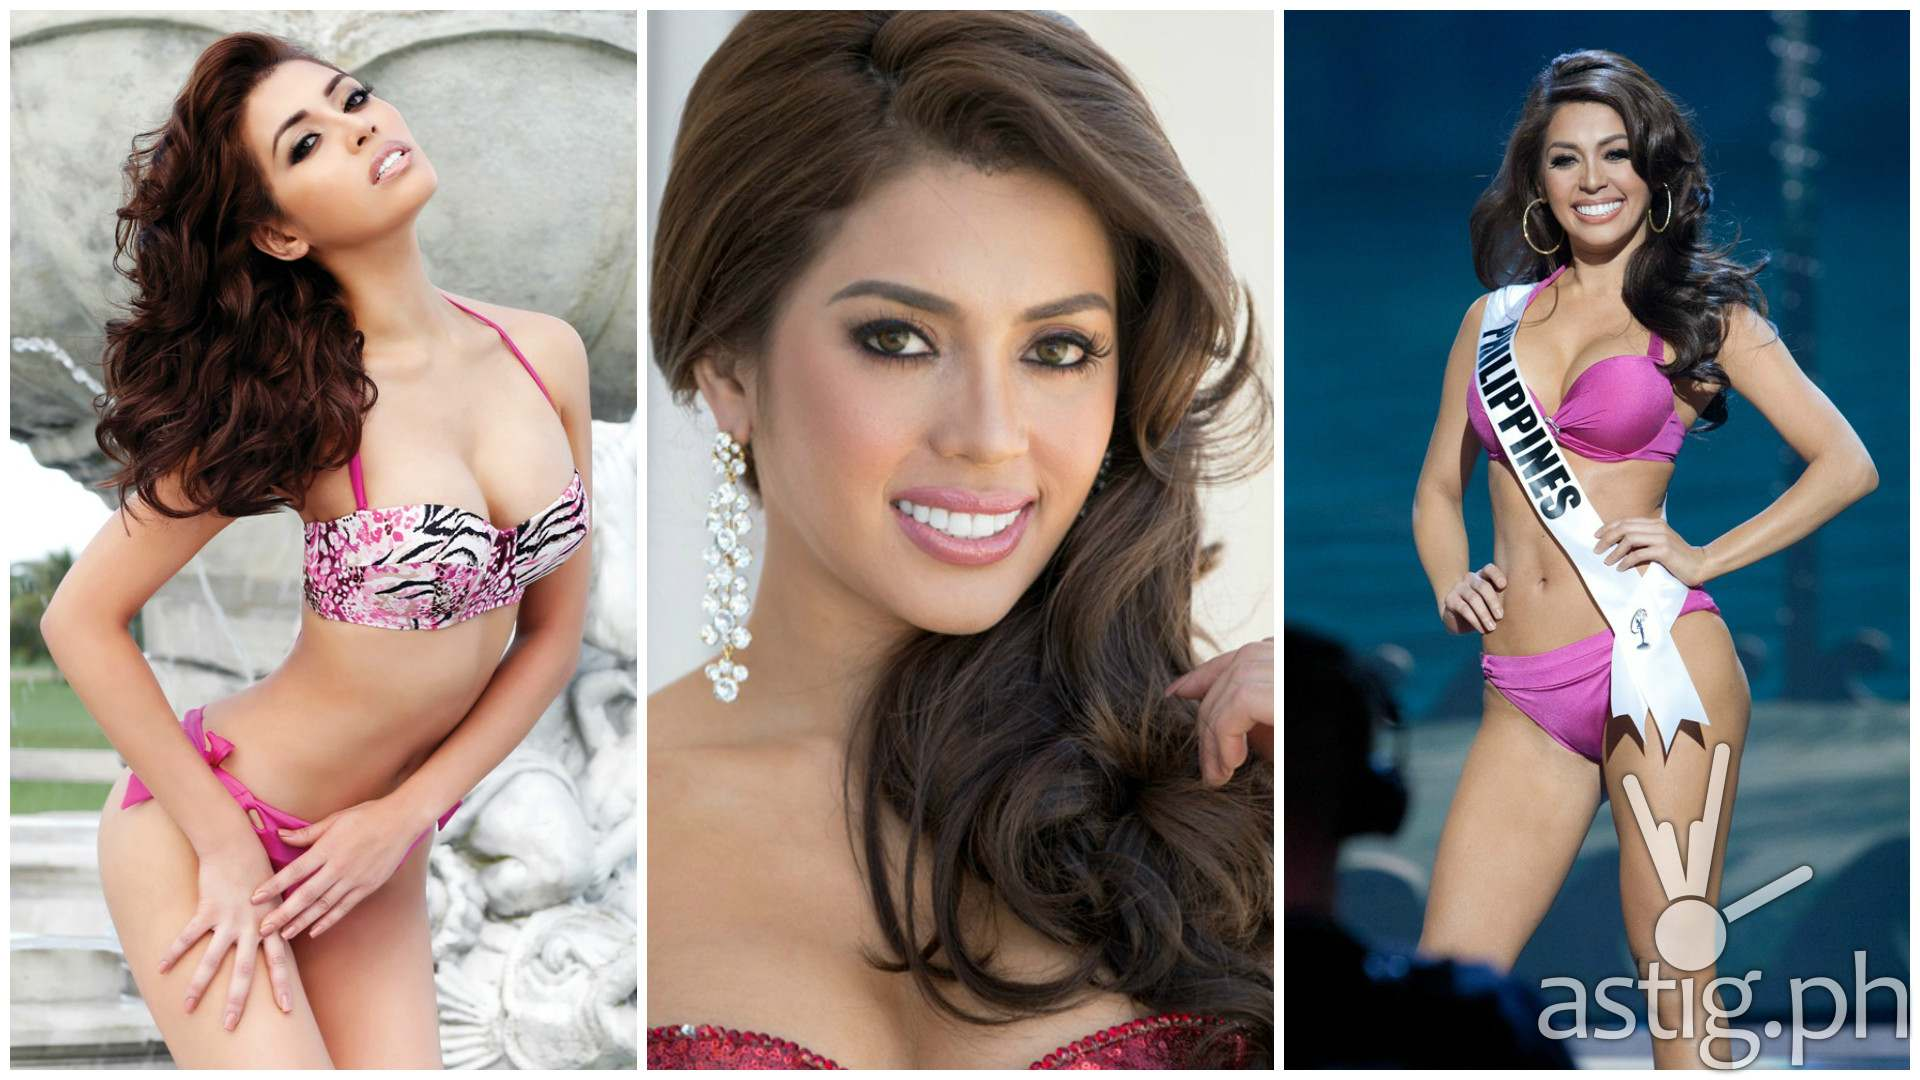 bb pilipinasuniverse mj lastimosa portrays own life story